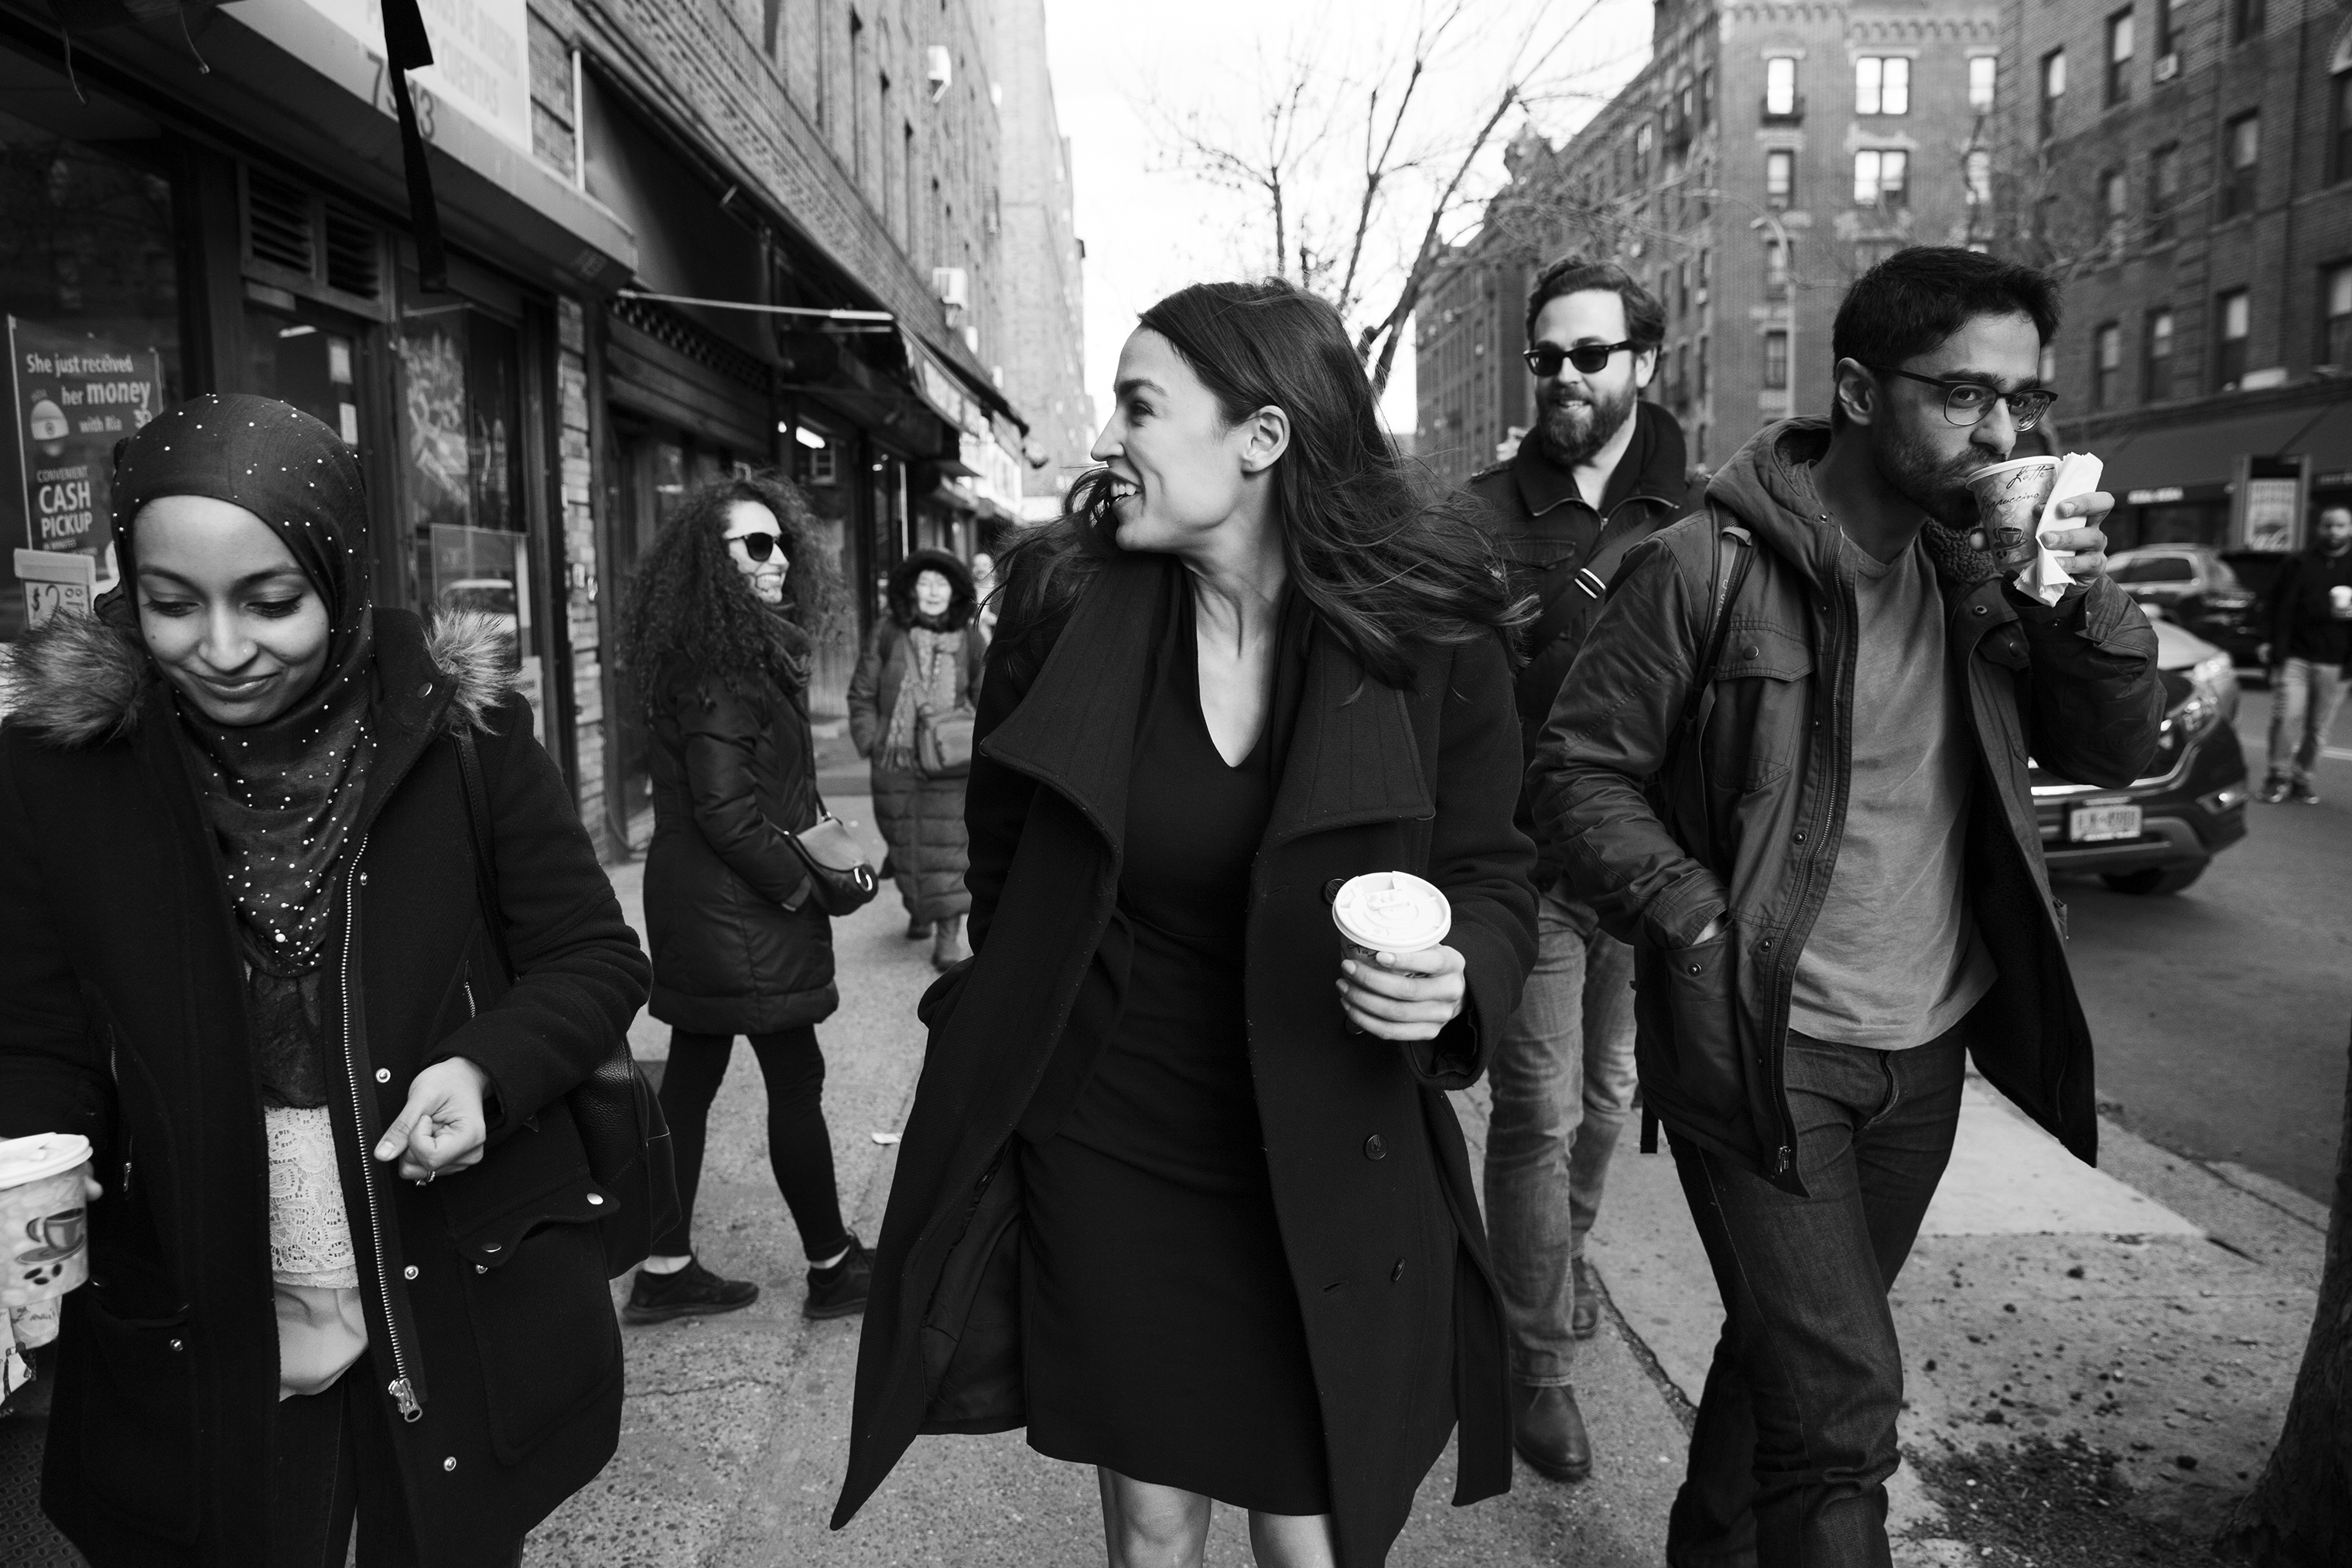 Rep. Alexandria Ocasio-Cortez walks down 37th Avenue with her staff towards her office in Jackson Heights, Queens. April 1 issue.